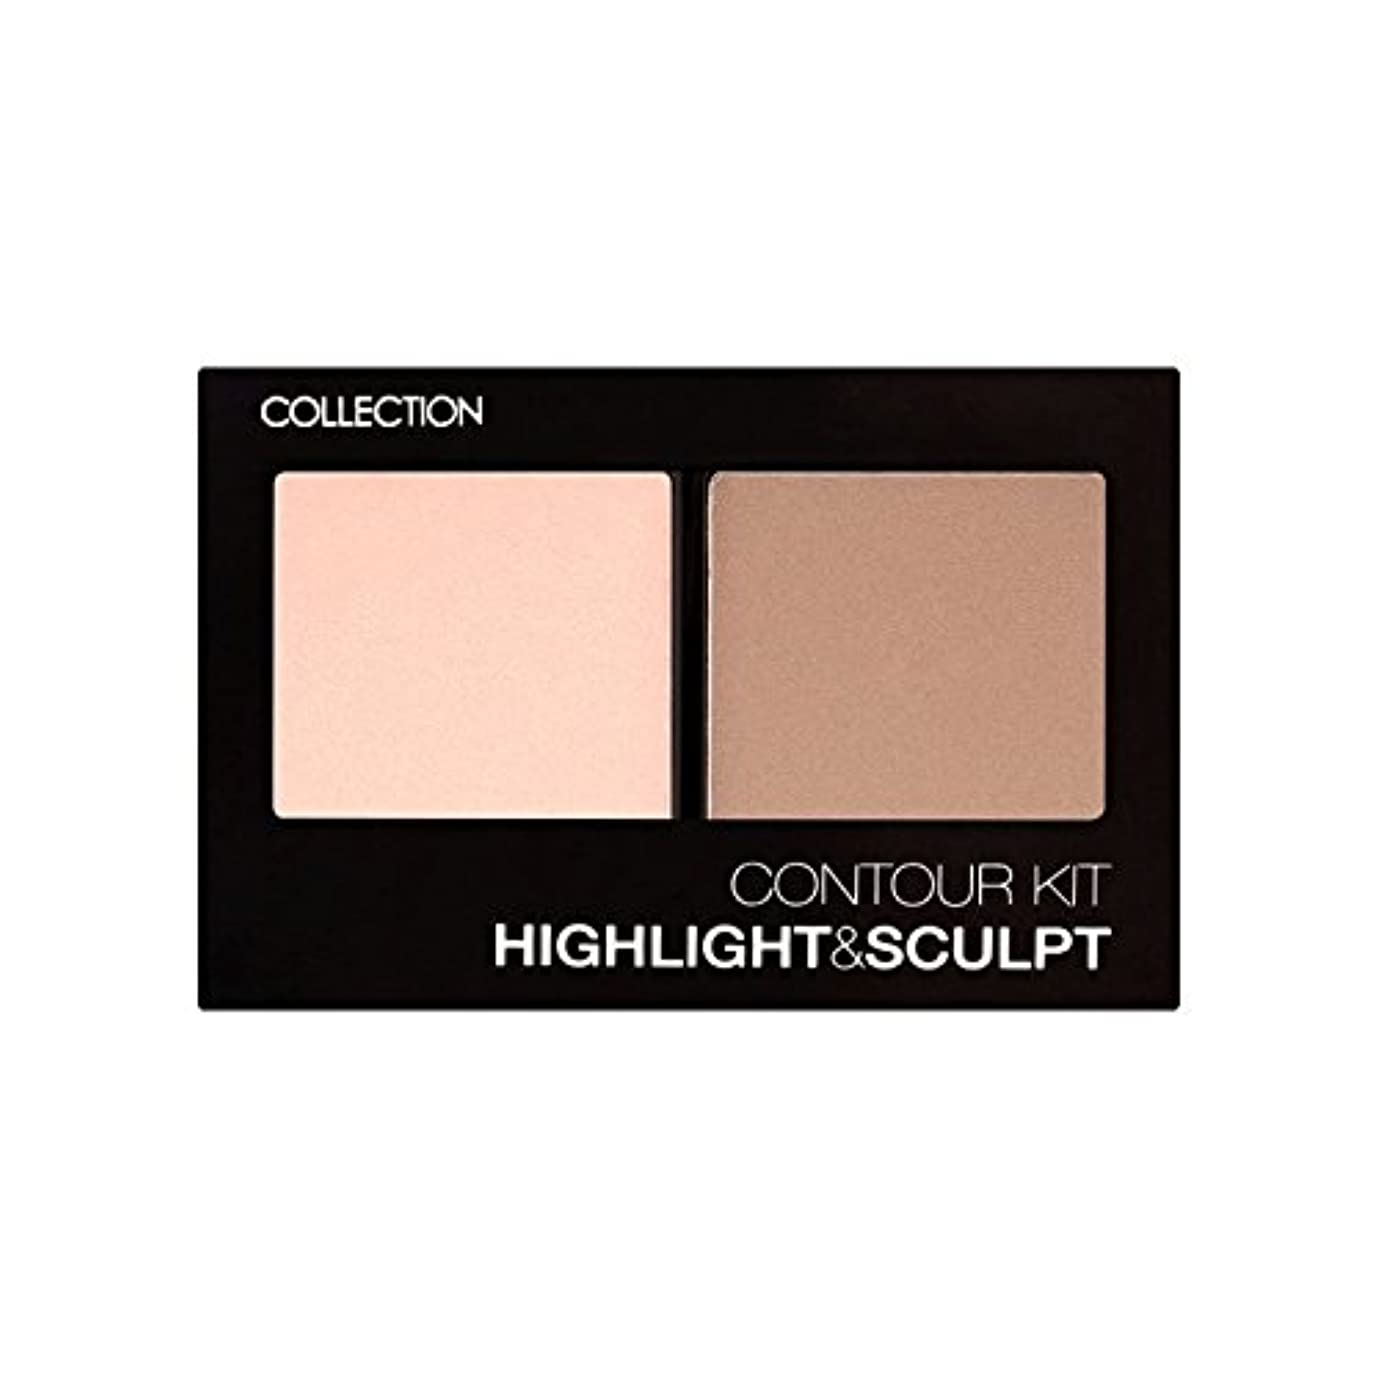 Collection Contour Kit Contour Kit 1 (Pack of 6) - コレクション、輪郭キット輪郭キット1 x6 [並行輸入品]